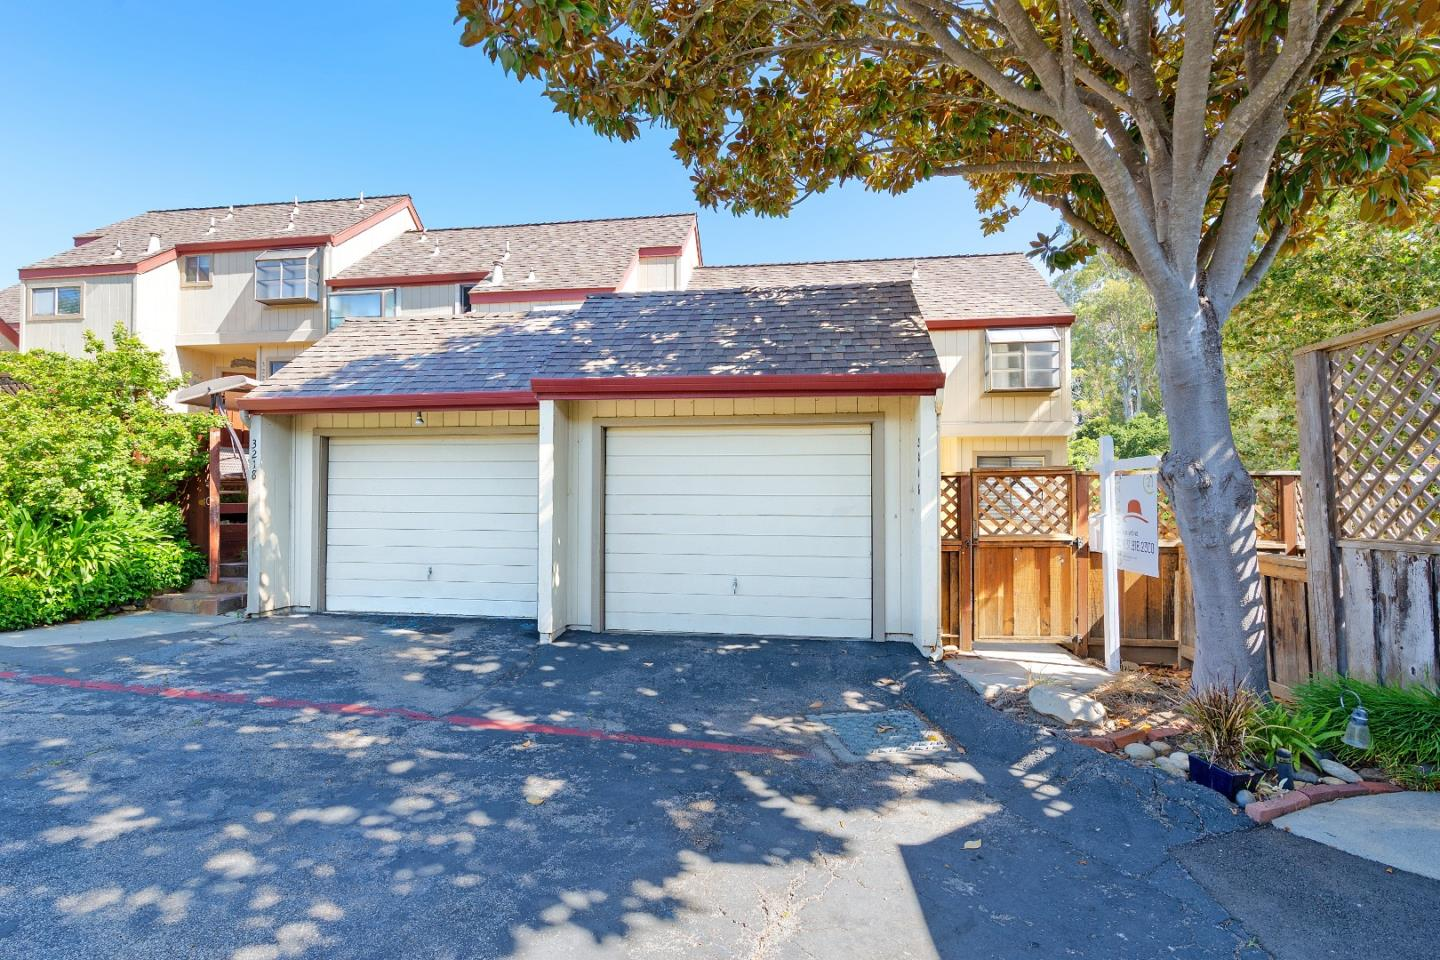 If you are looking for a charming townhouse style condo in a perfect mid-county location, look no further. This home is close in proximity to all that Santa Cruz has to offer: several beaches, The Municipal Wharf, The Boardwalk and the vibrant downtown garden mall, but also, within minutes of the quaint shops and restaurants of downtown Soquel, and the shopping on 41st Avenue in Capitola and Pleasure Point. The fenced front deck offers views of the Rodeo Gulch Greenbelt. Inside, a wood burning fireplace is the centerpiece of a spacious living room featuring a slider to a fenced backyard patio. Also, downstairs, enjoy the kitchen with breakfast nook. Upstairs, you'll find 2 bedrooms. The light-filled Master Suite features a private deck. This home is an end unit in a well-maintained community, and includes a 1 car garage. Don't miss the opportunity to see this lovely home!